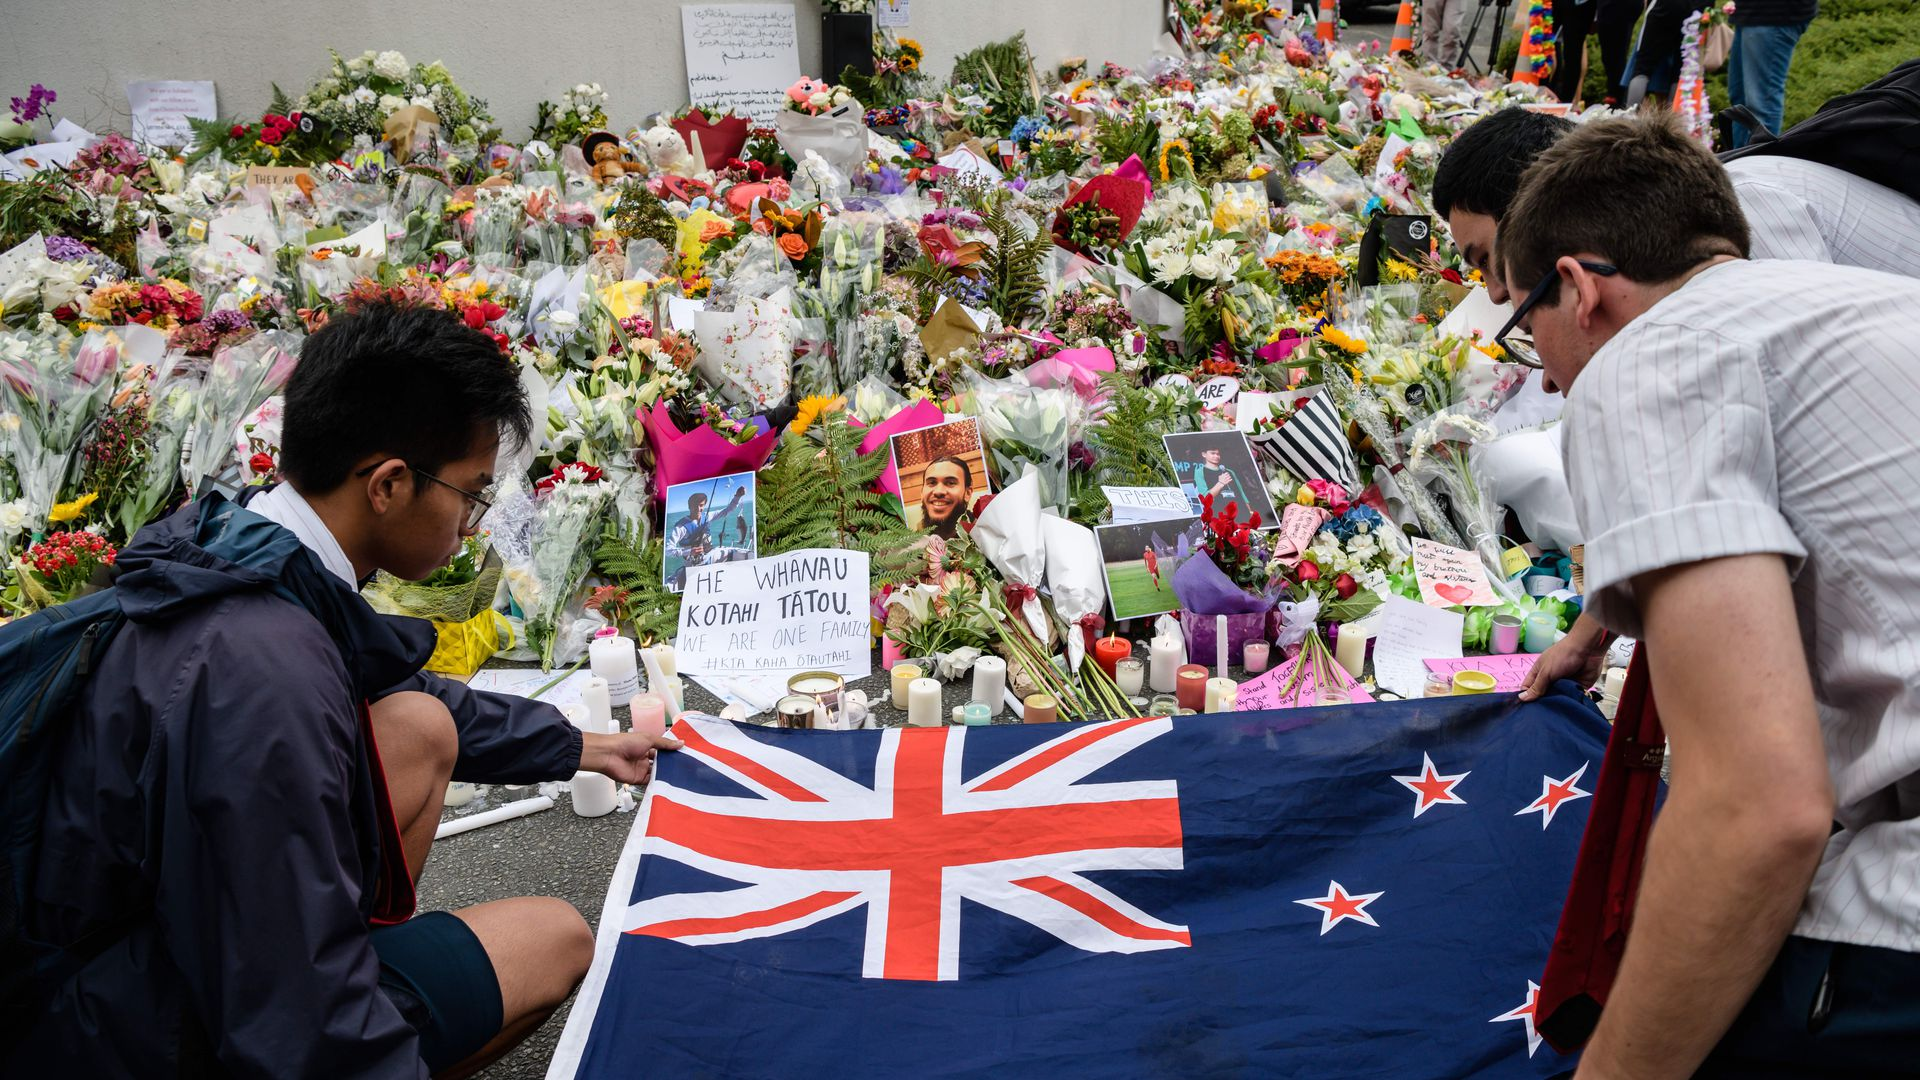 New Zealand man jailed for 21 months for distributing terror attacks video